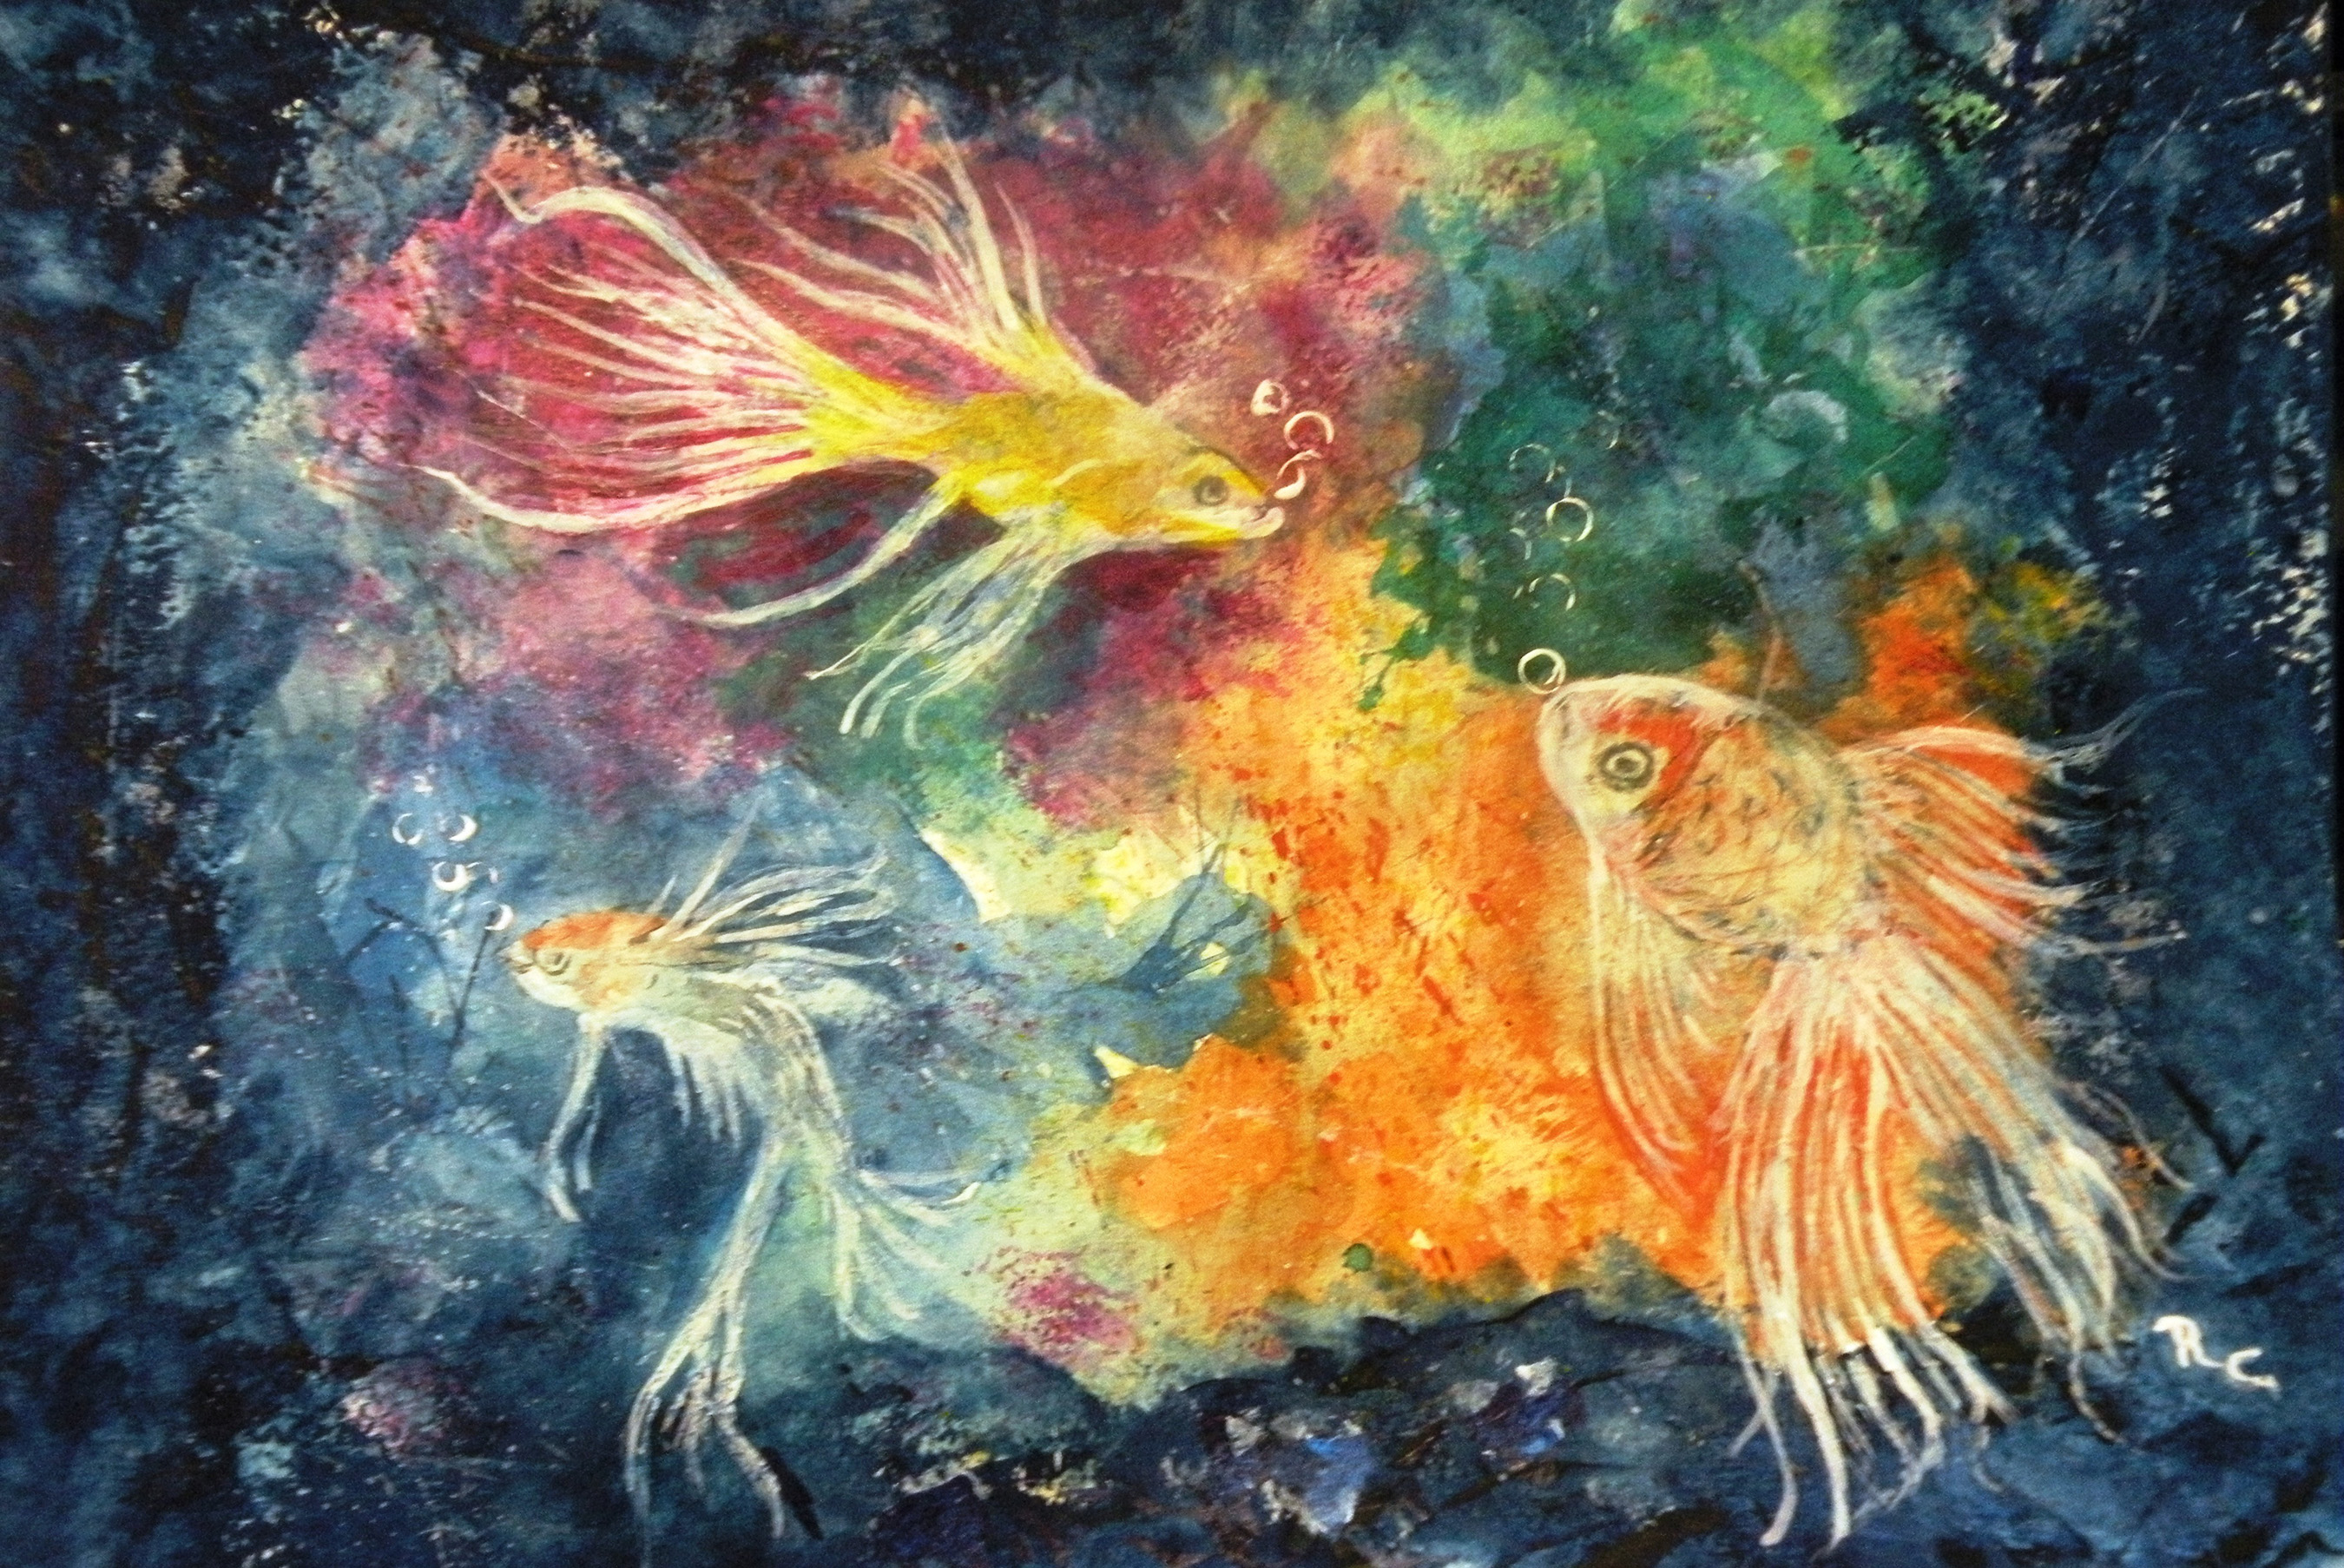 Swimming Among the Coral Reef (Watercolor) $375